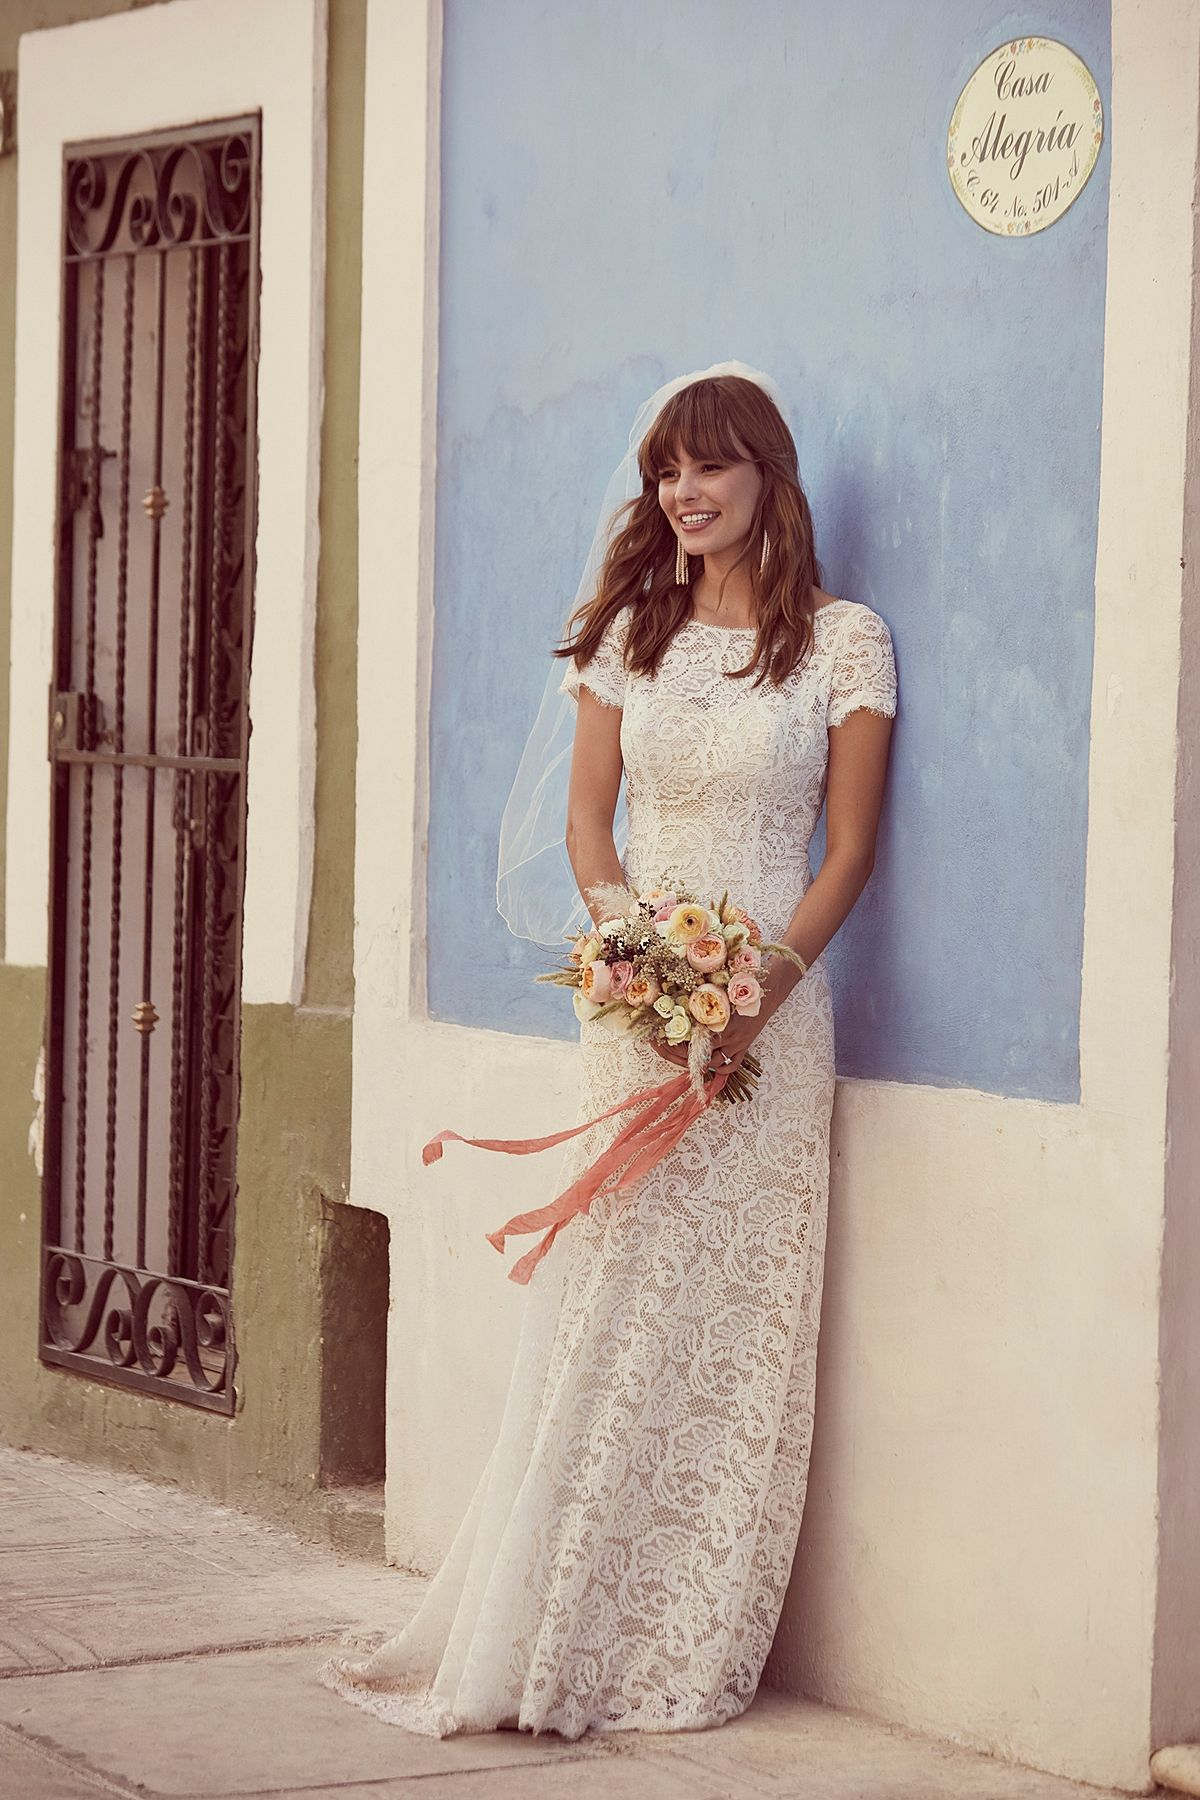 new davidus bridal dresses that canut stop wonut stop lace